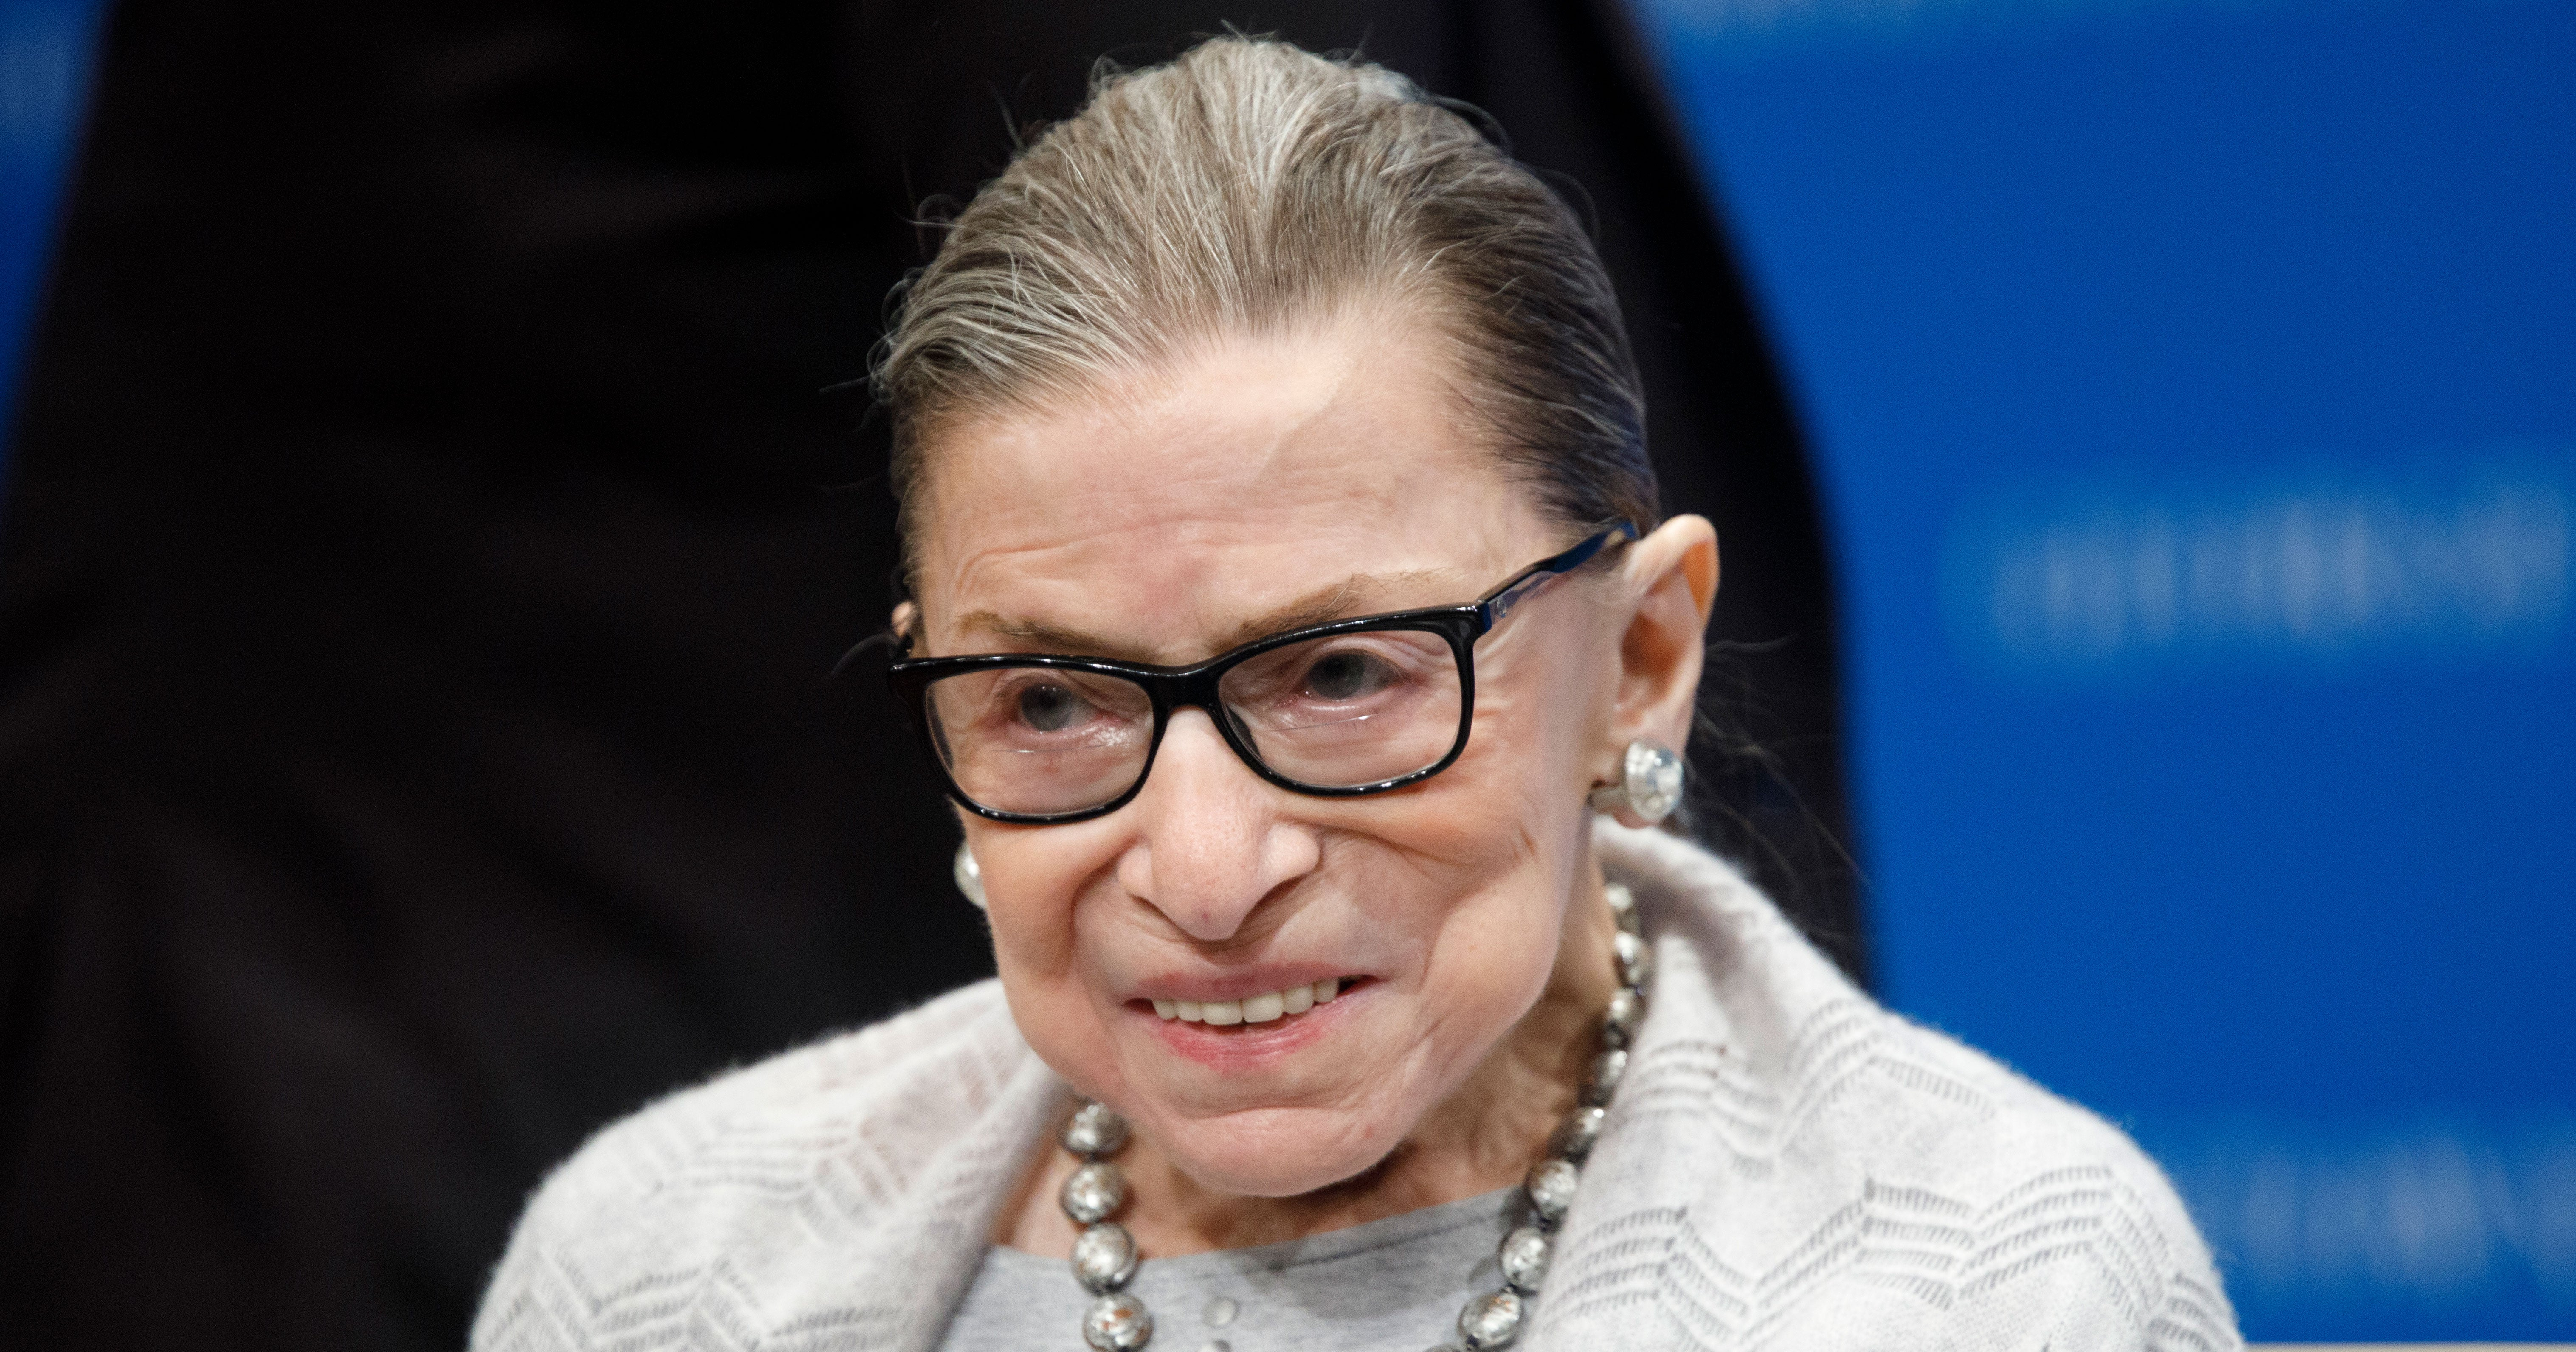 It's Official: Ruth Bader Ginsburg Announced She Is Cancer-Free